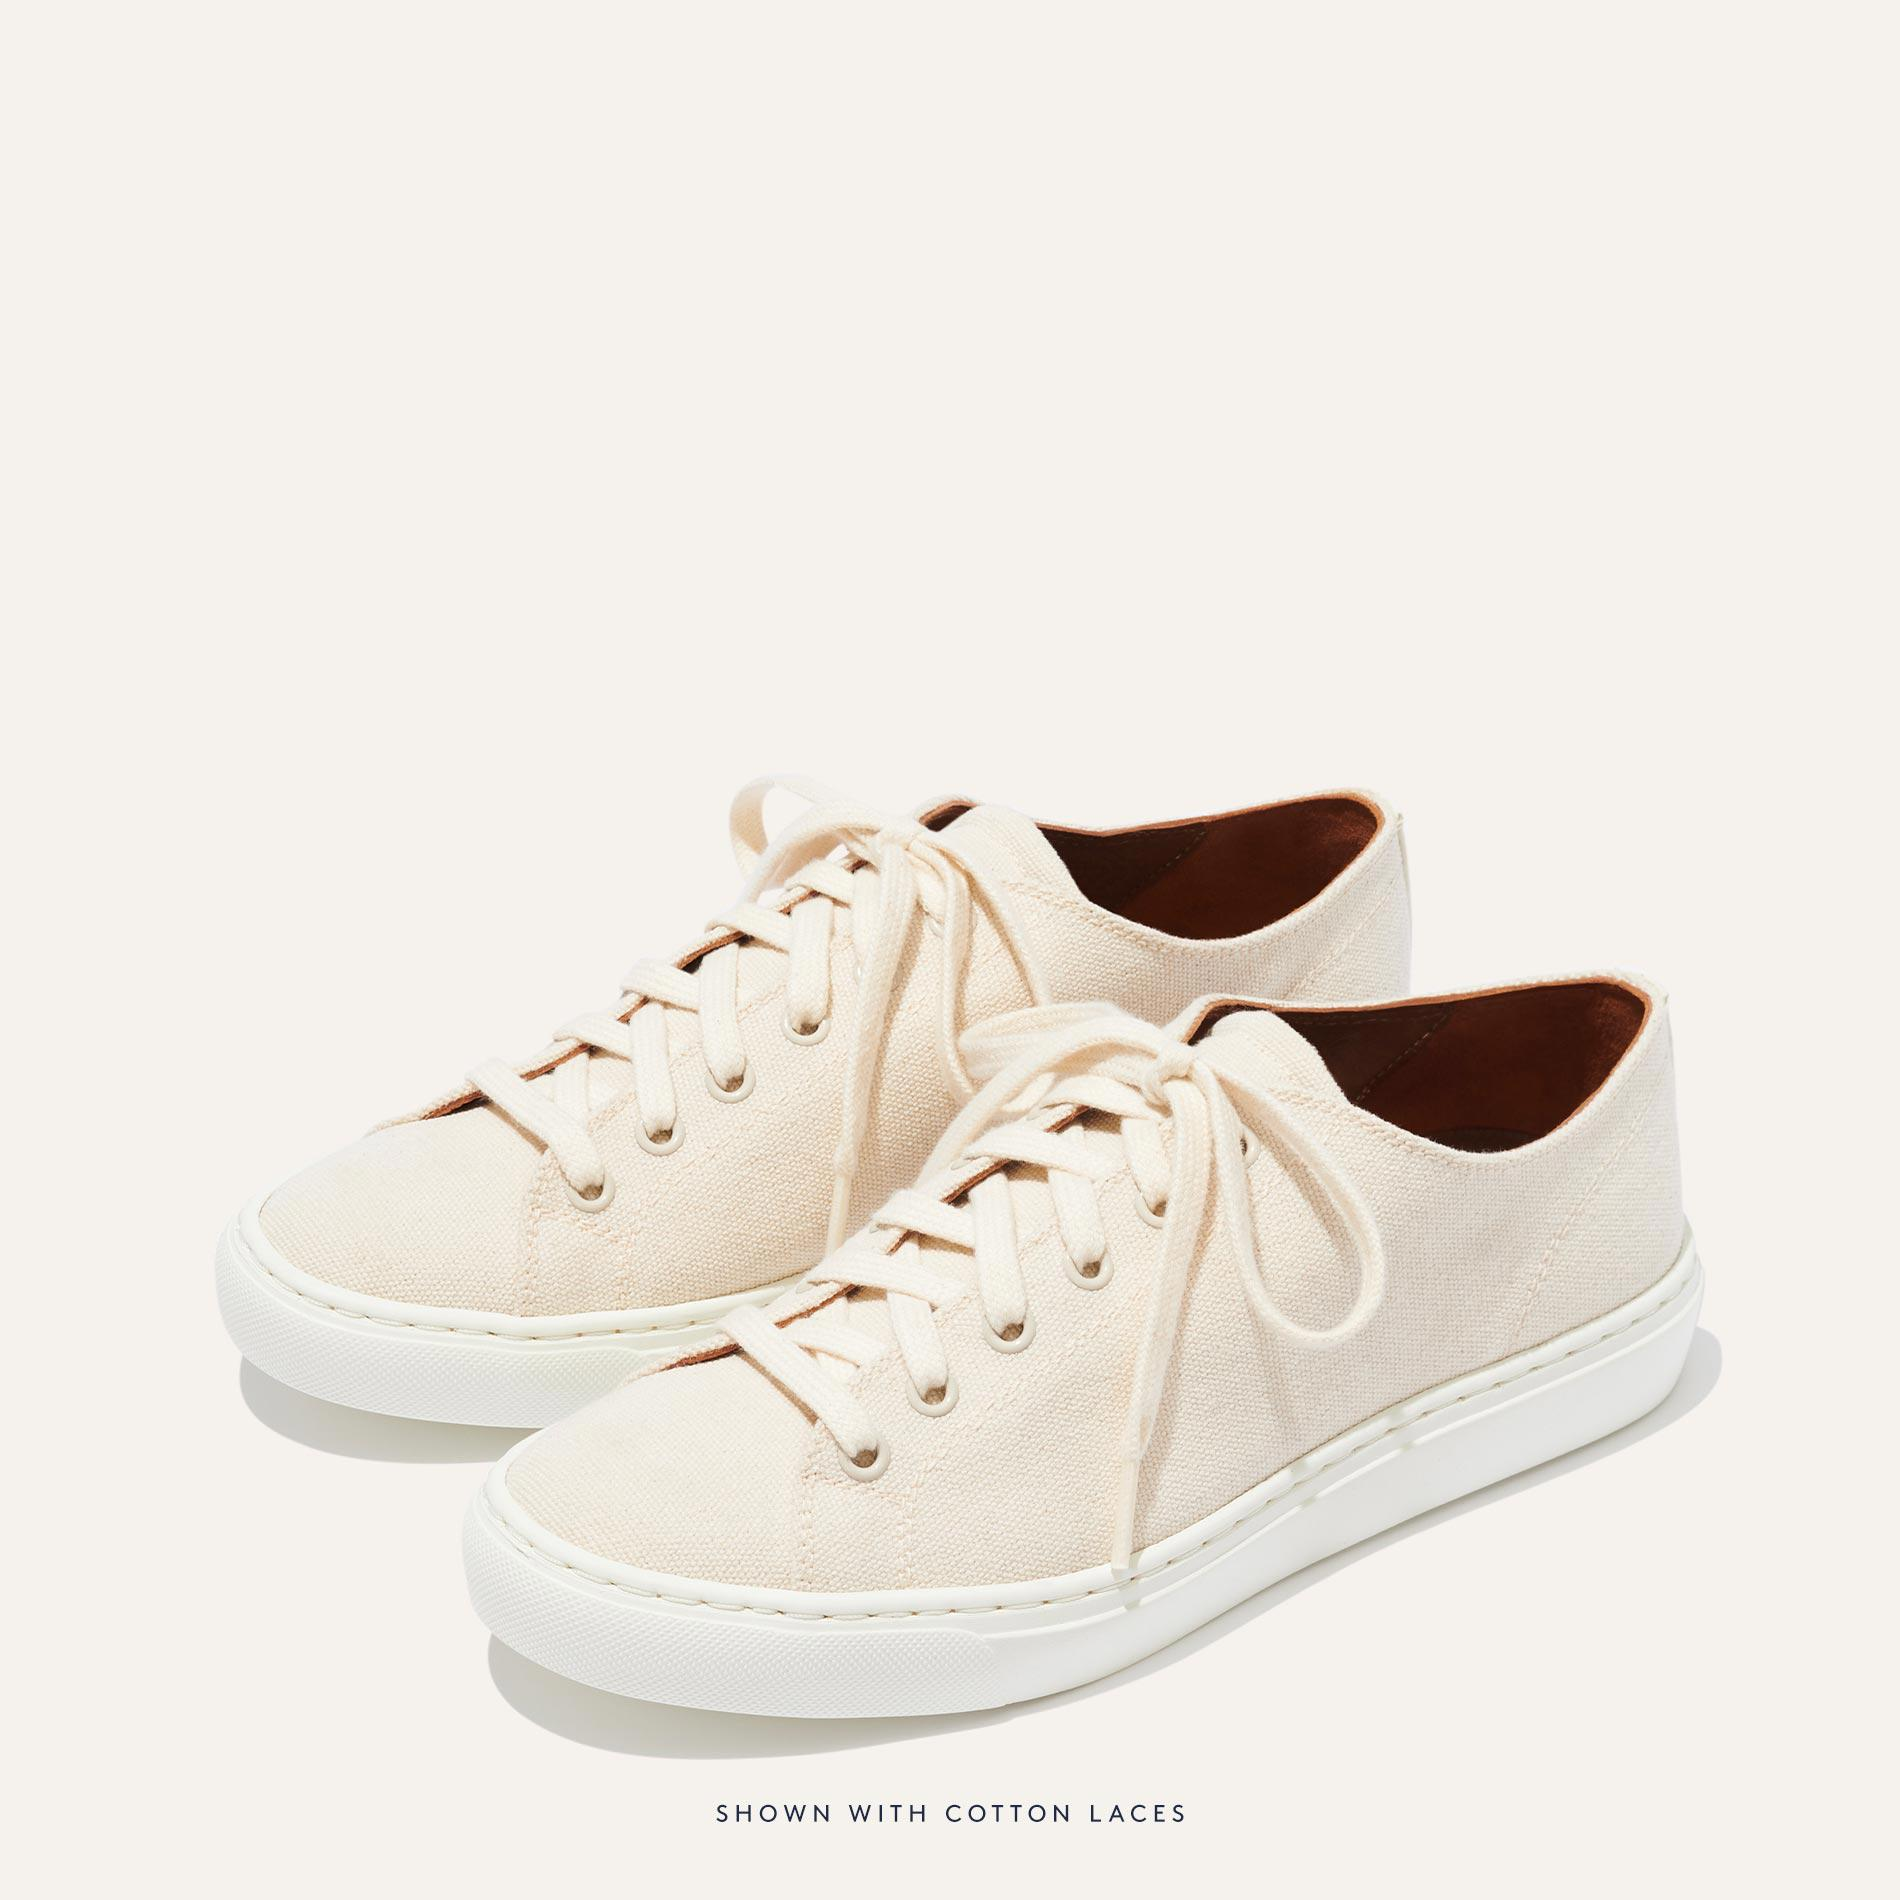 The Summer Sneaker - Ivory Canvas 1